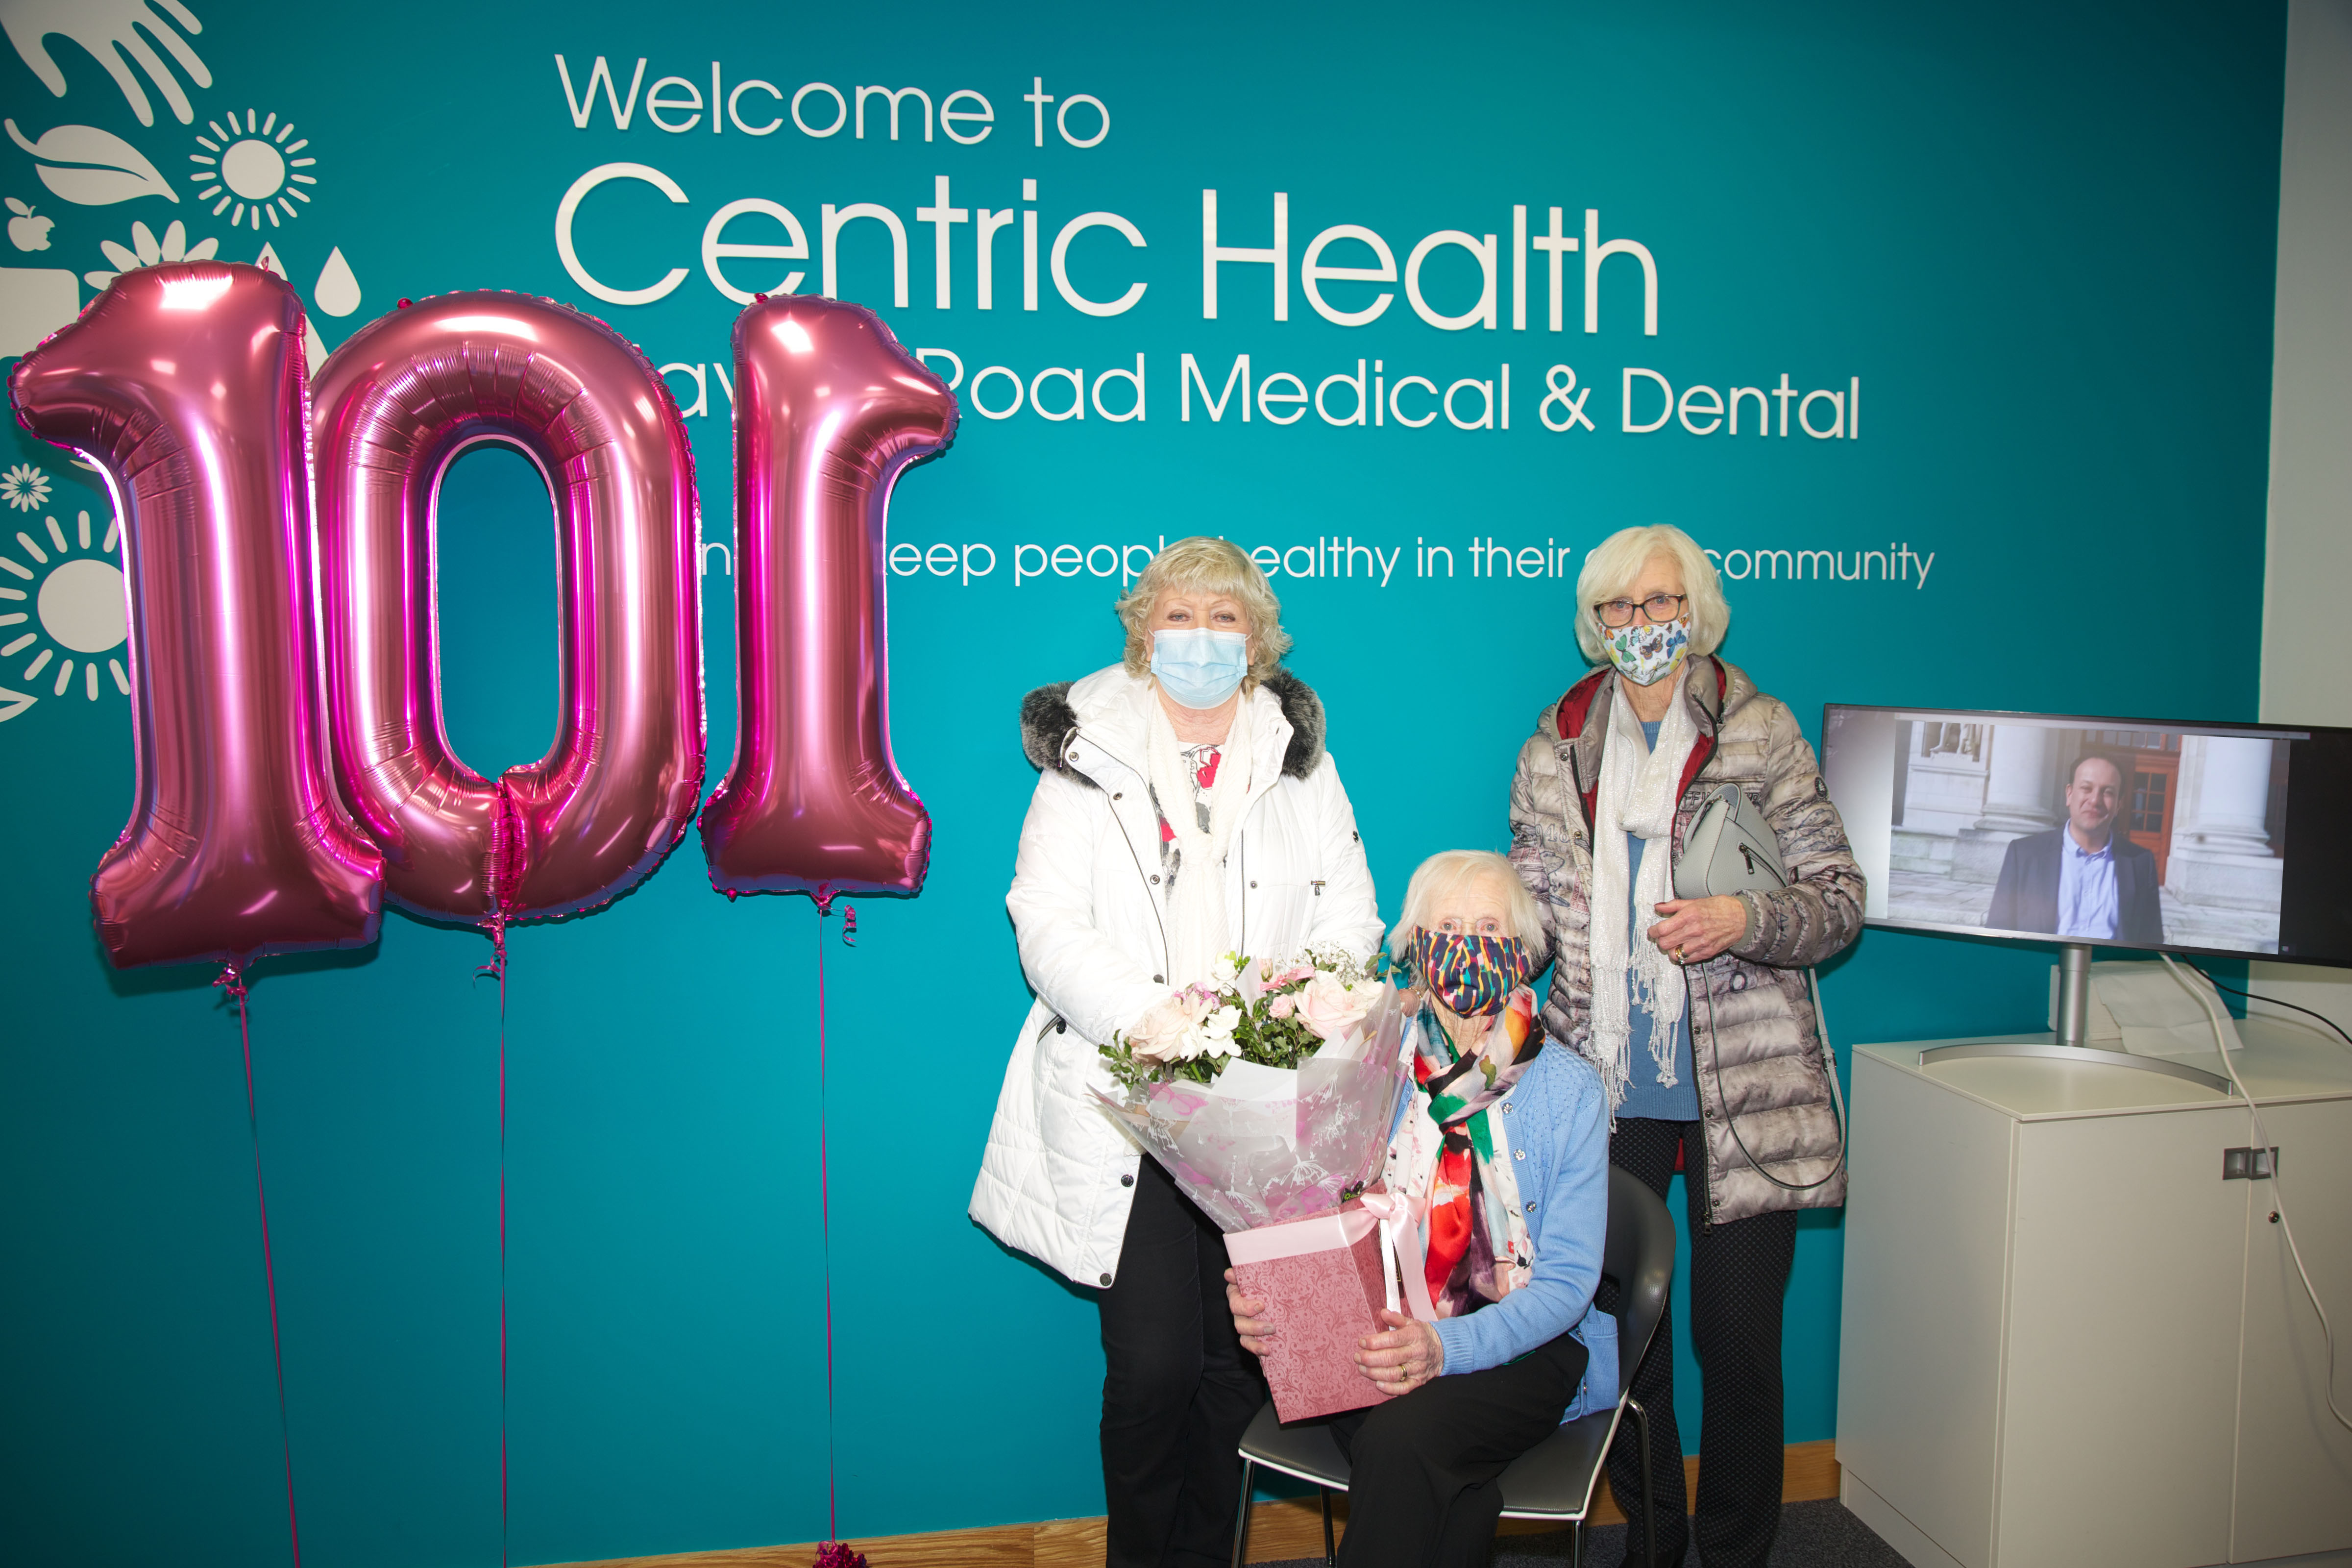 Centenarian Mary Kelly, celebrating her 101st birthday today, at Navan Road Medical had a surprise Birthday address from Tanaiste Leo Varadkar while receiving her first Covid 19 vaccine (1)